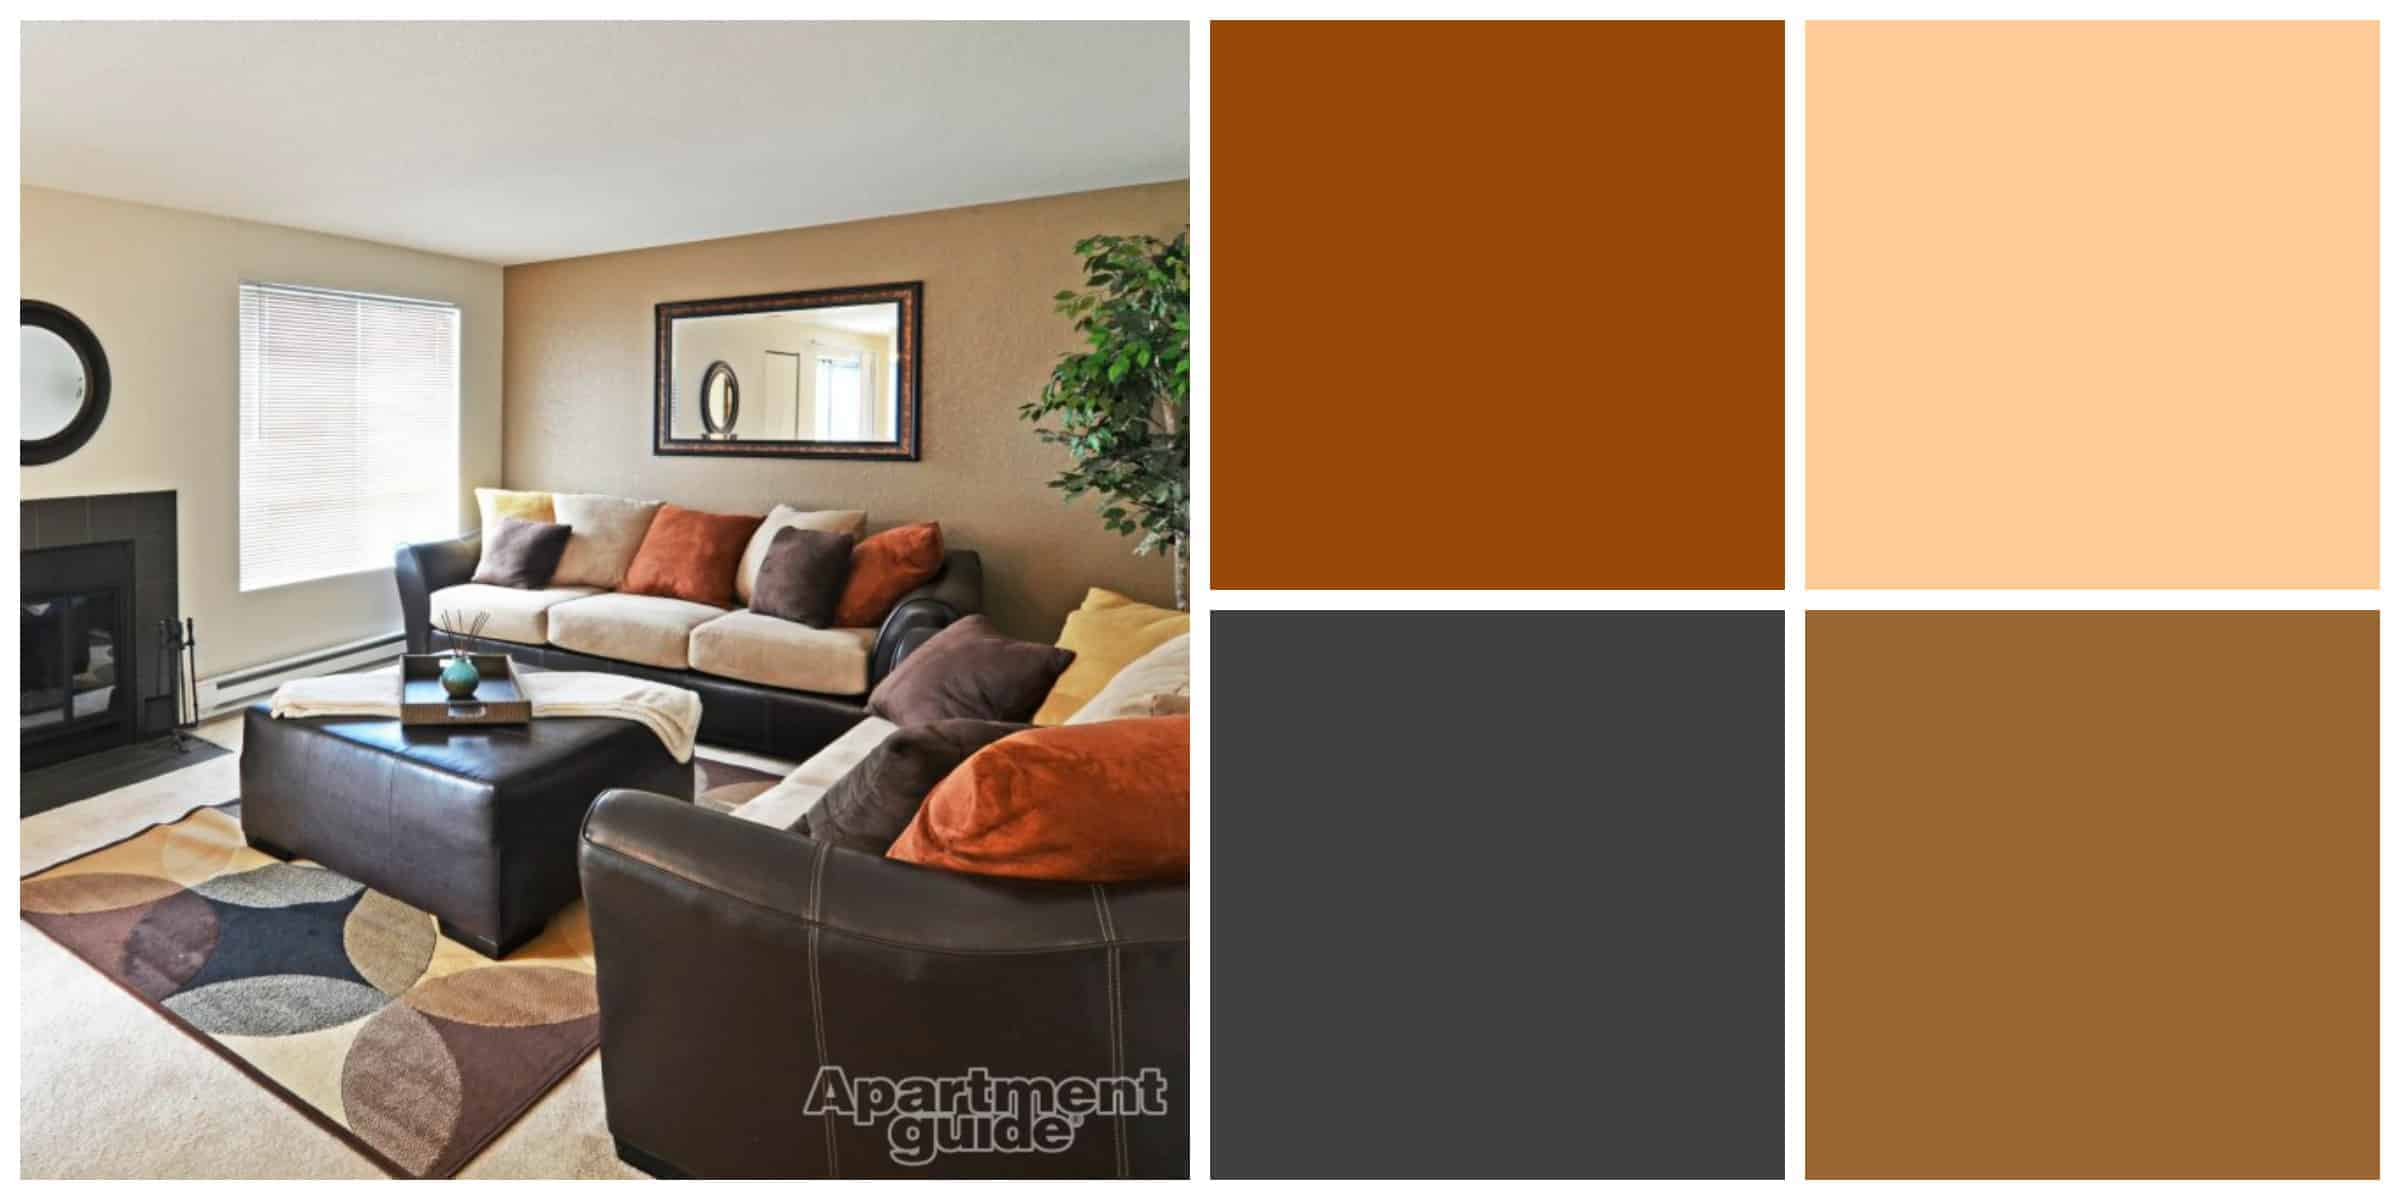 8 Easy Breezy Earth Tone Palettes for Your Apartment  : palette2 from www.apartmentguide.com size 2400 x 1200 jpeg 631kB